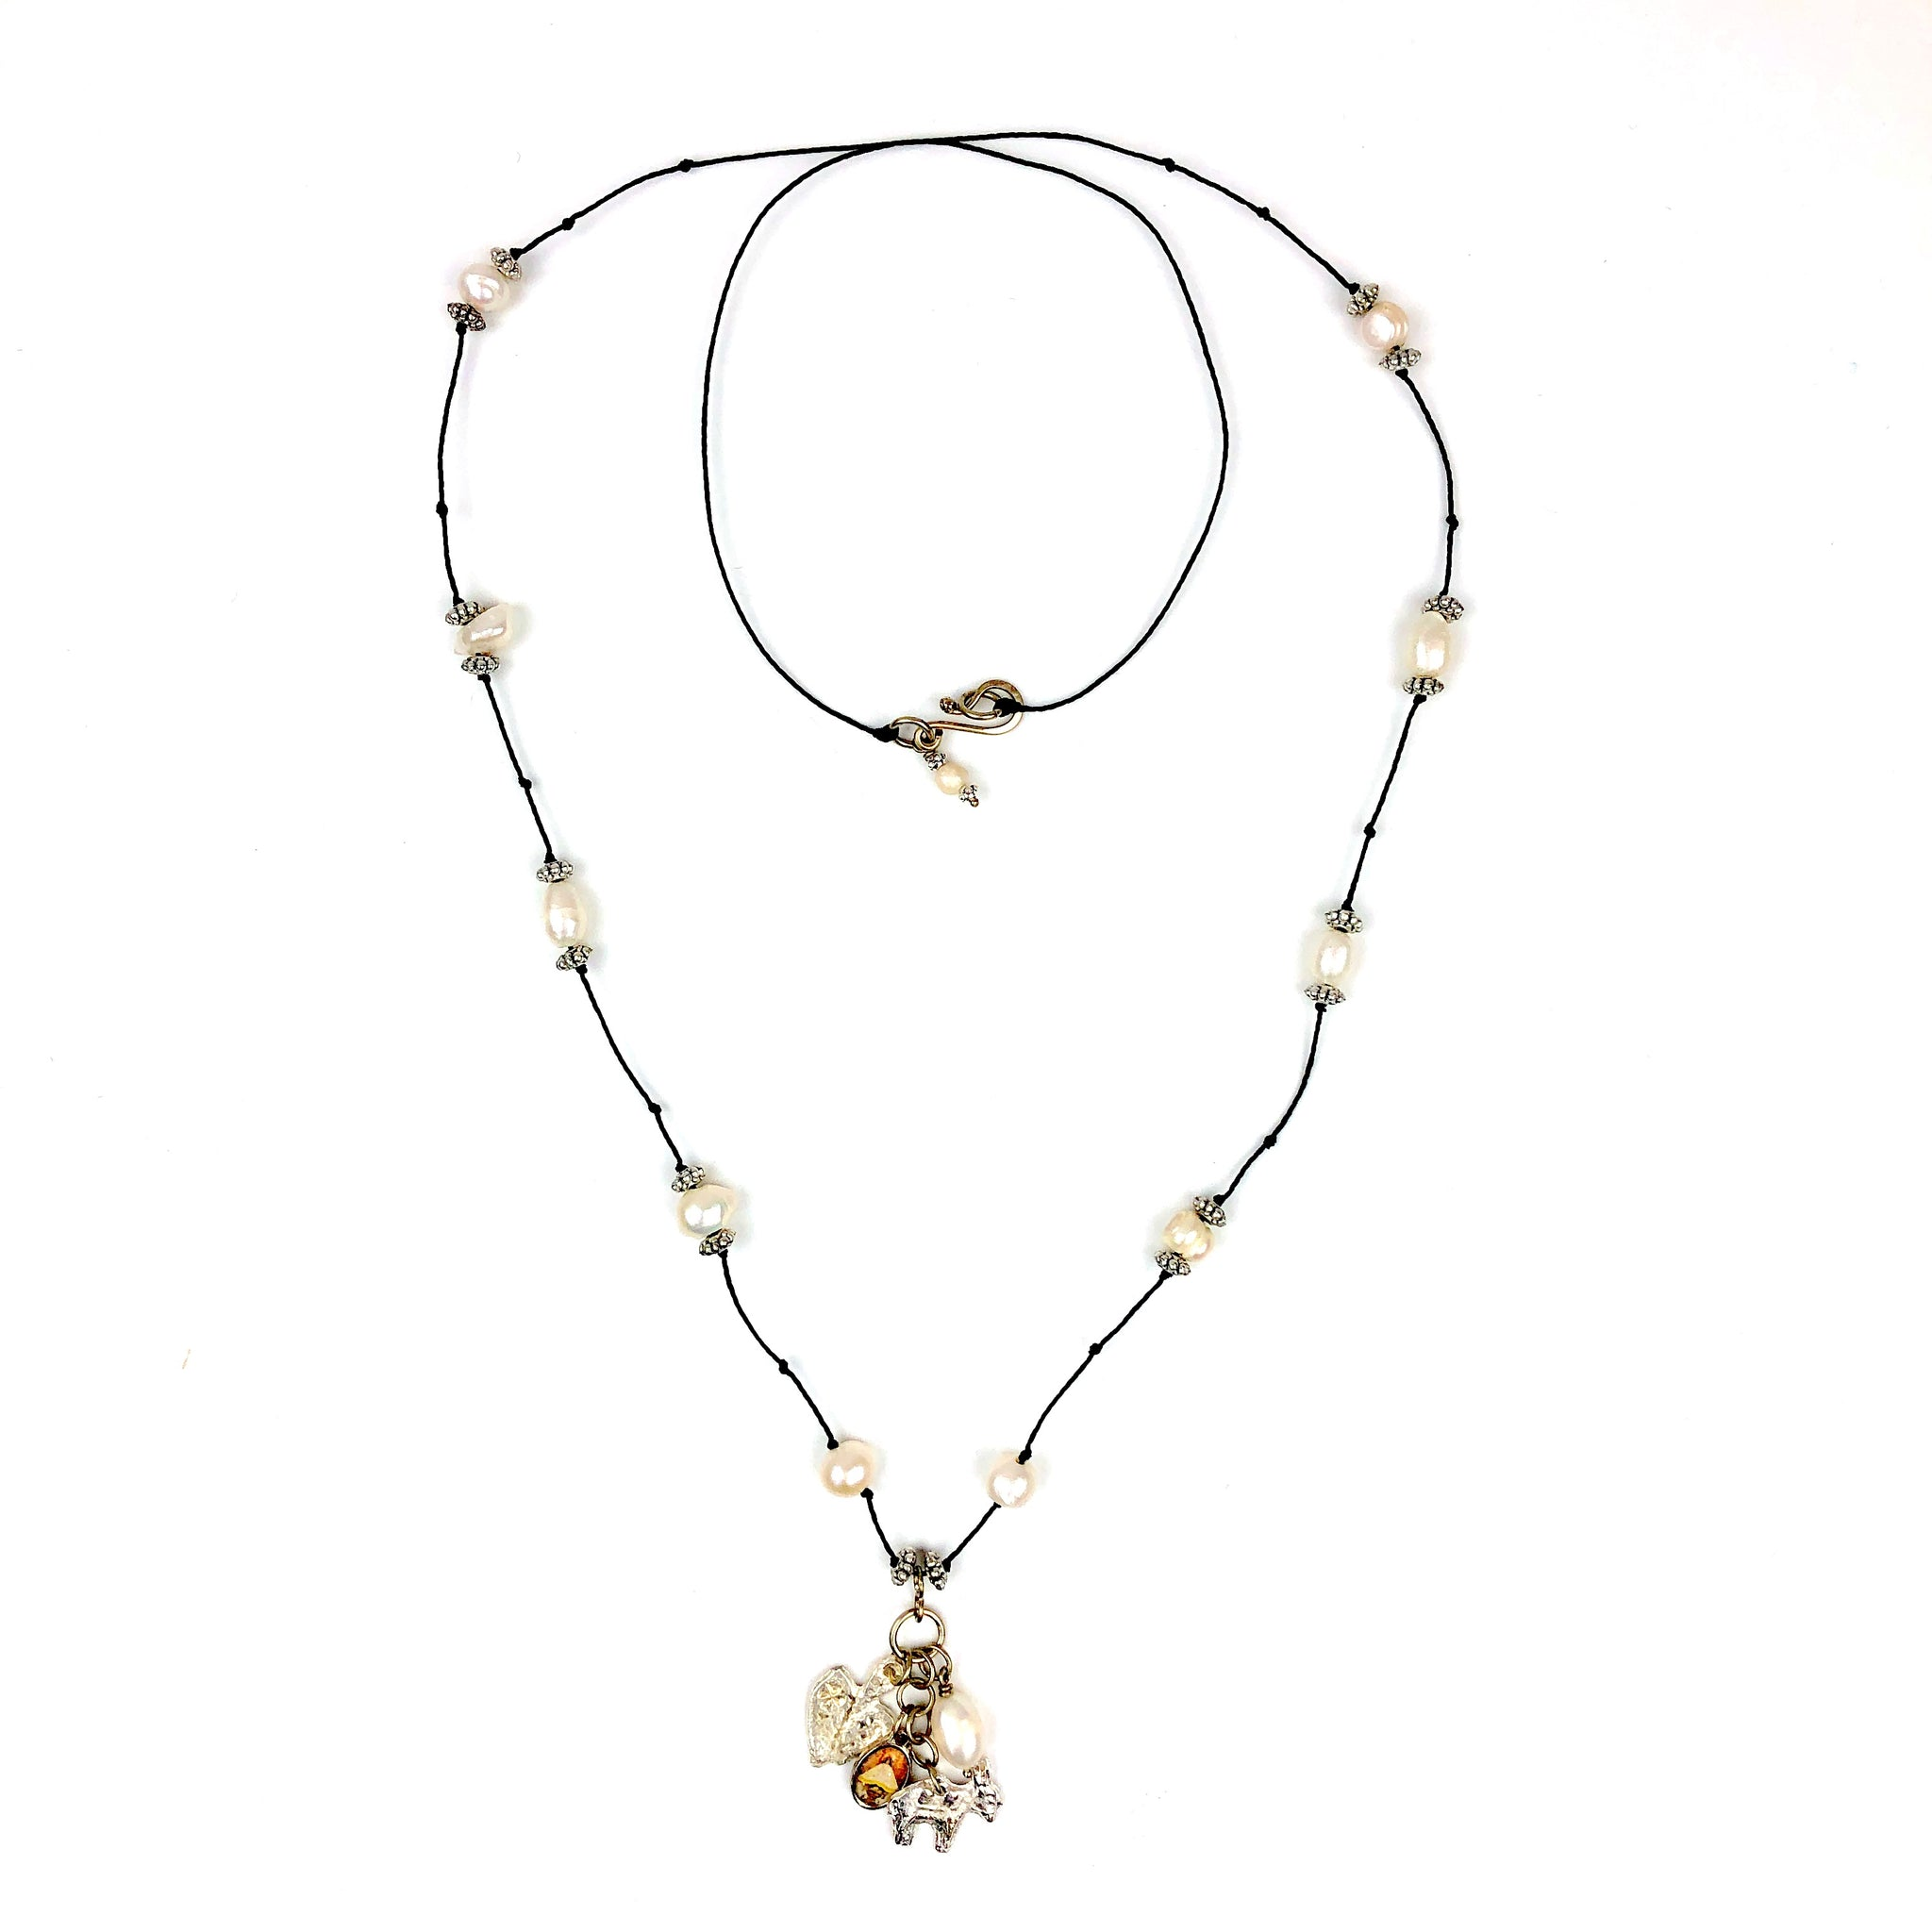 Juquila milagro pearl crystal long necklace